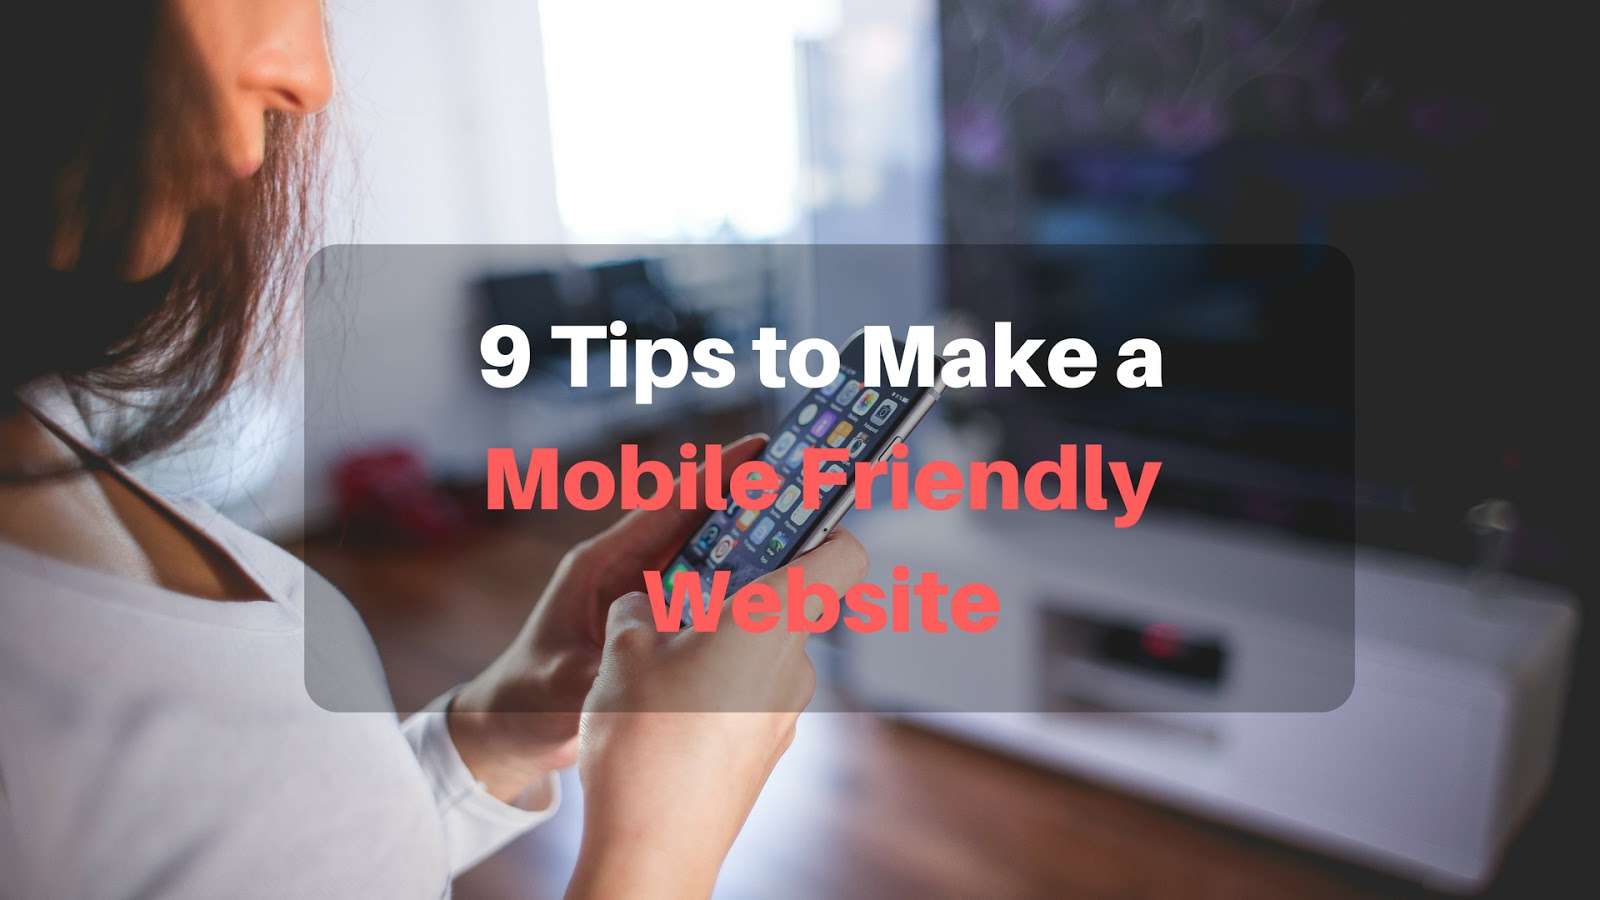 make a mobile friendly website, create mobile responsive site